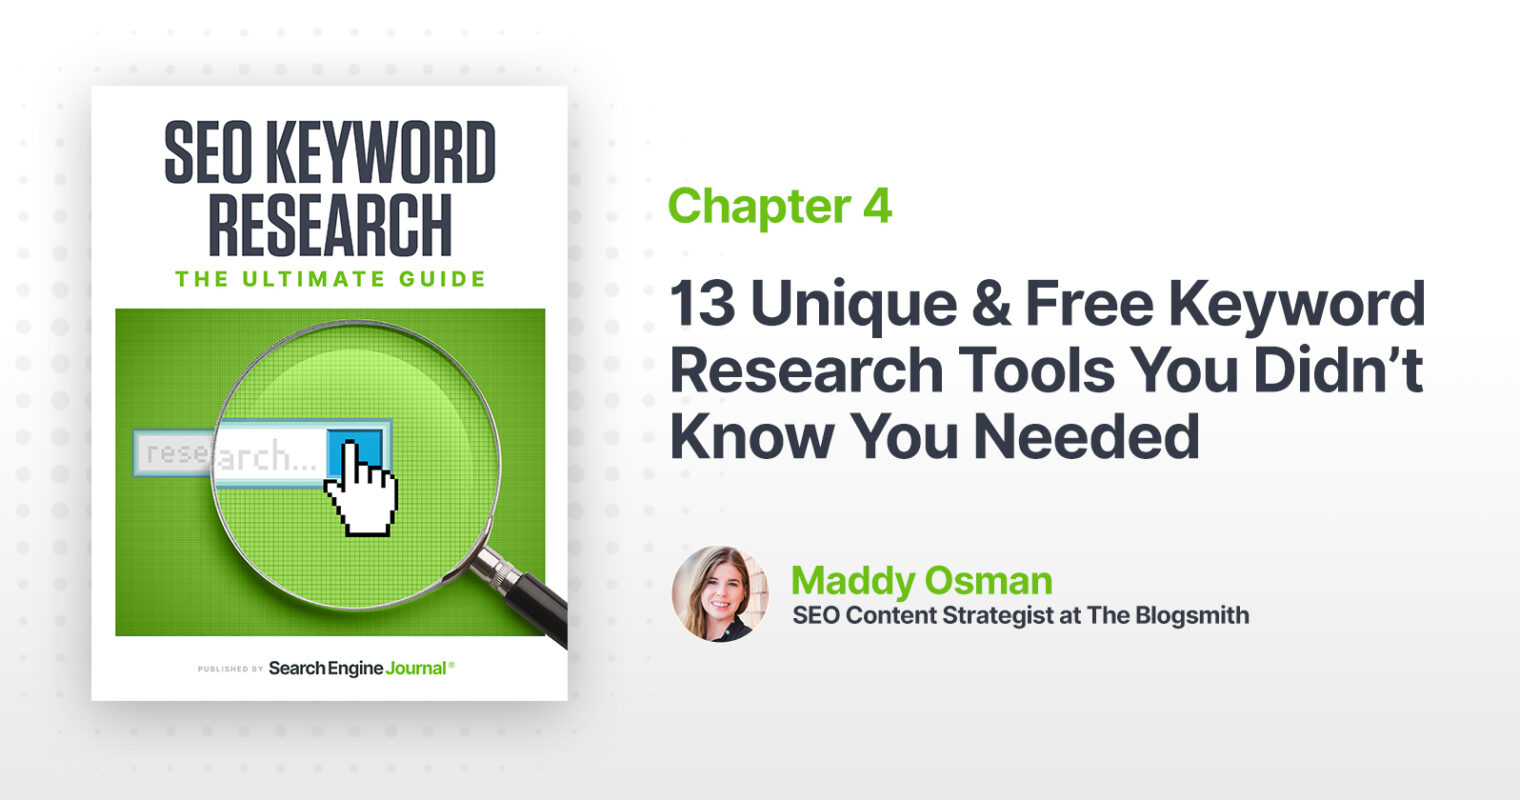 13 Unique & Free Keyword Research Tools You Didn't Know You Needed